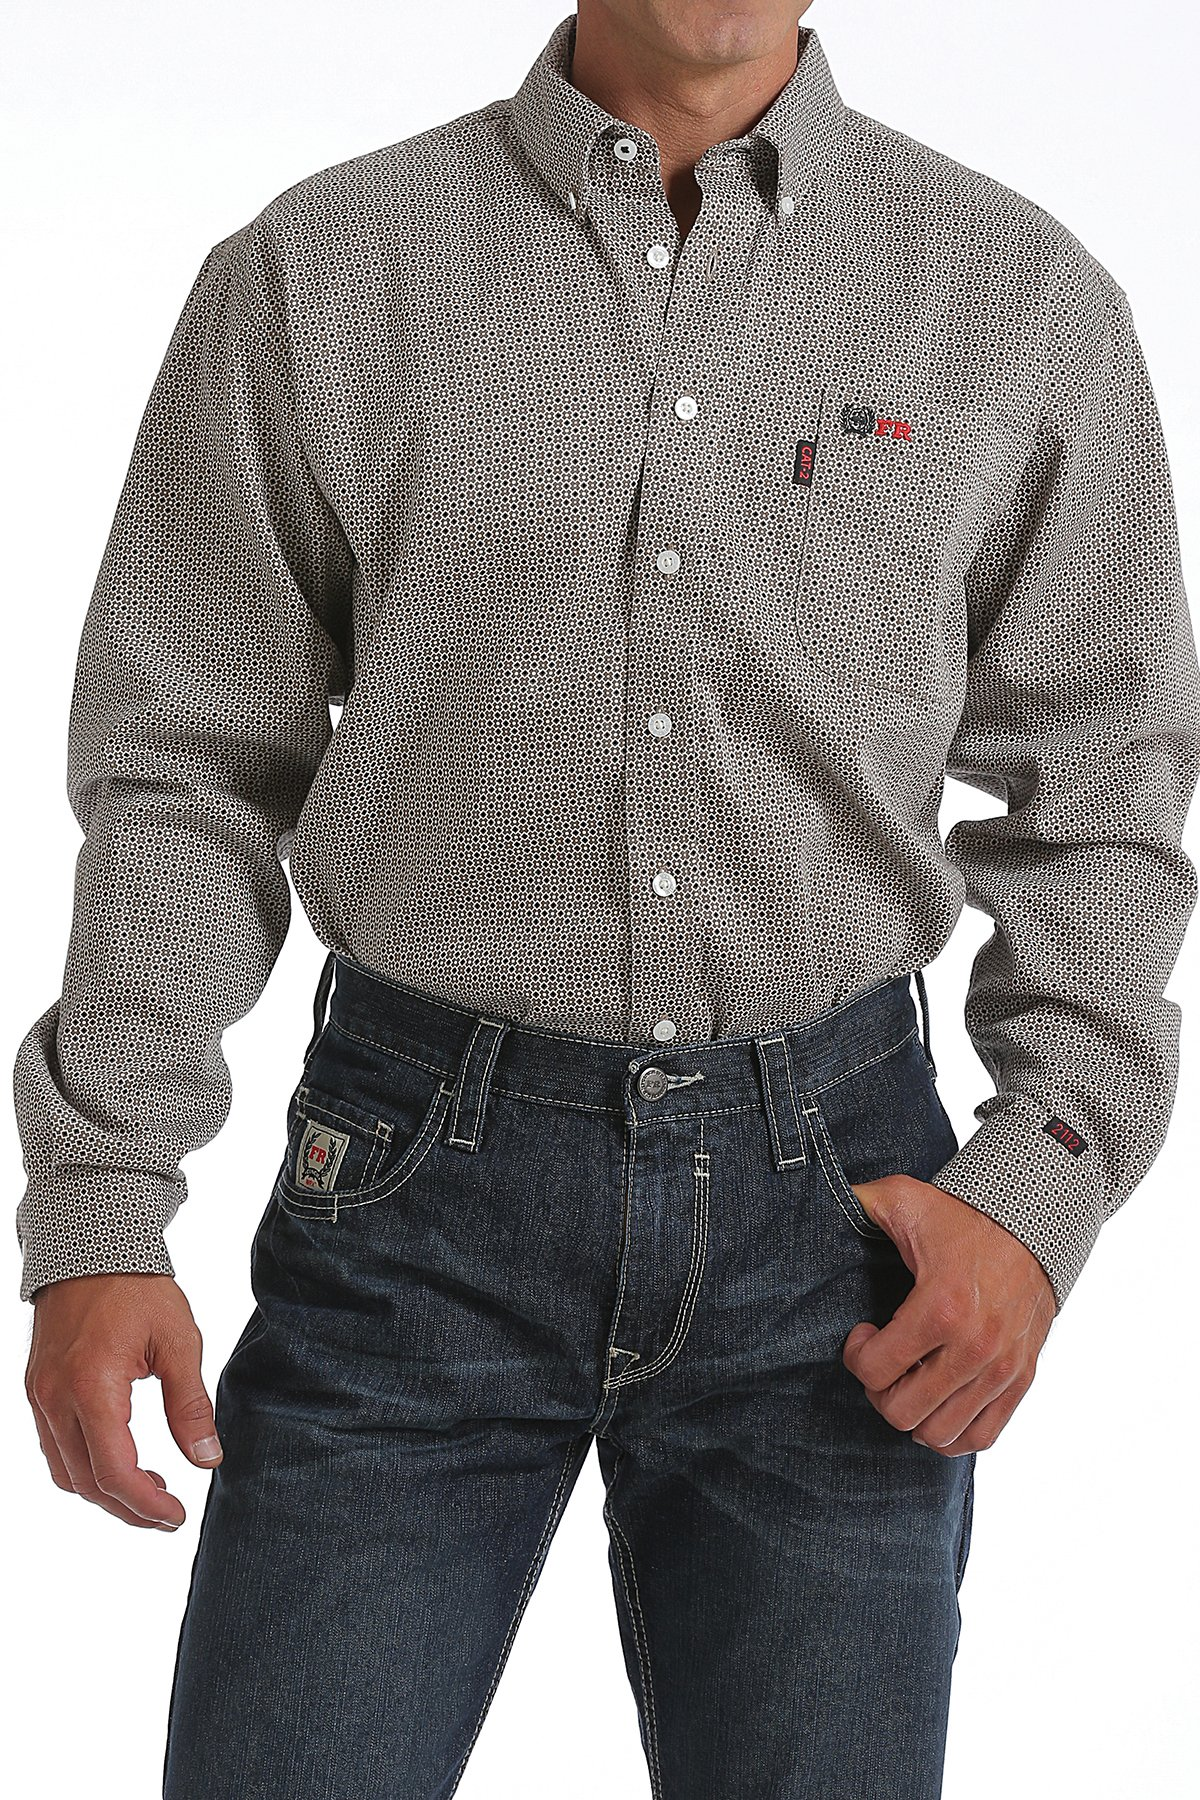 CINCH FR WRX TAN GEOMETRIC PRINT WORK SHIRT-Cinch WRX